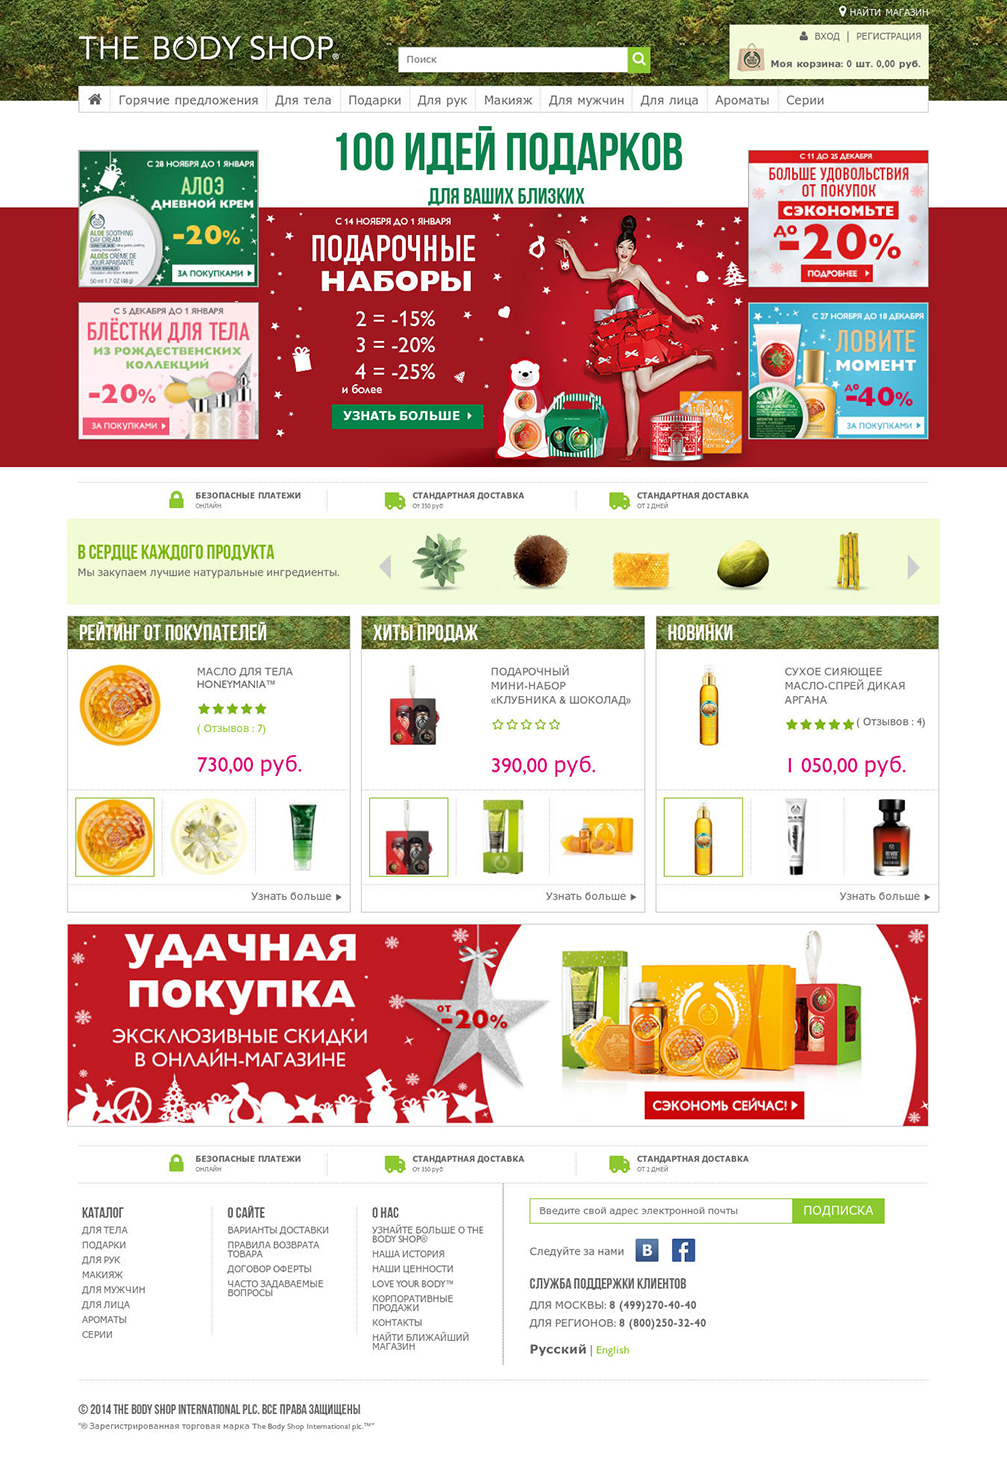 Сайт компании «The Body Shop» кейс проекта